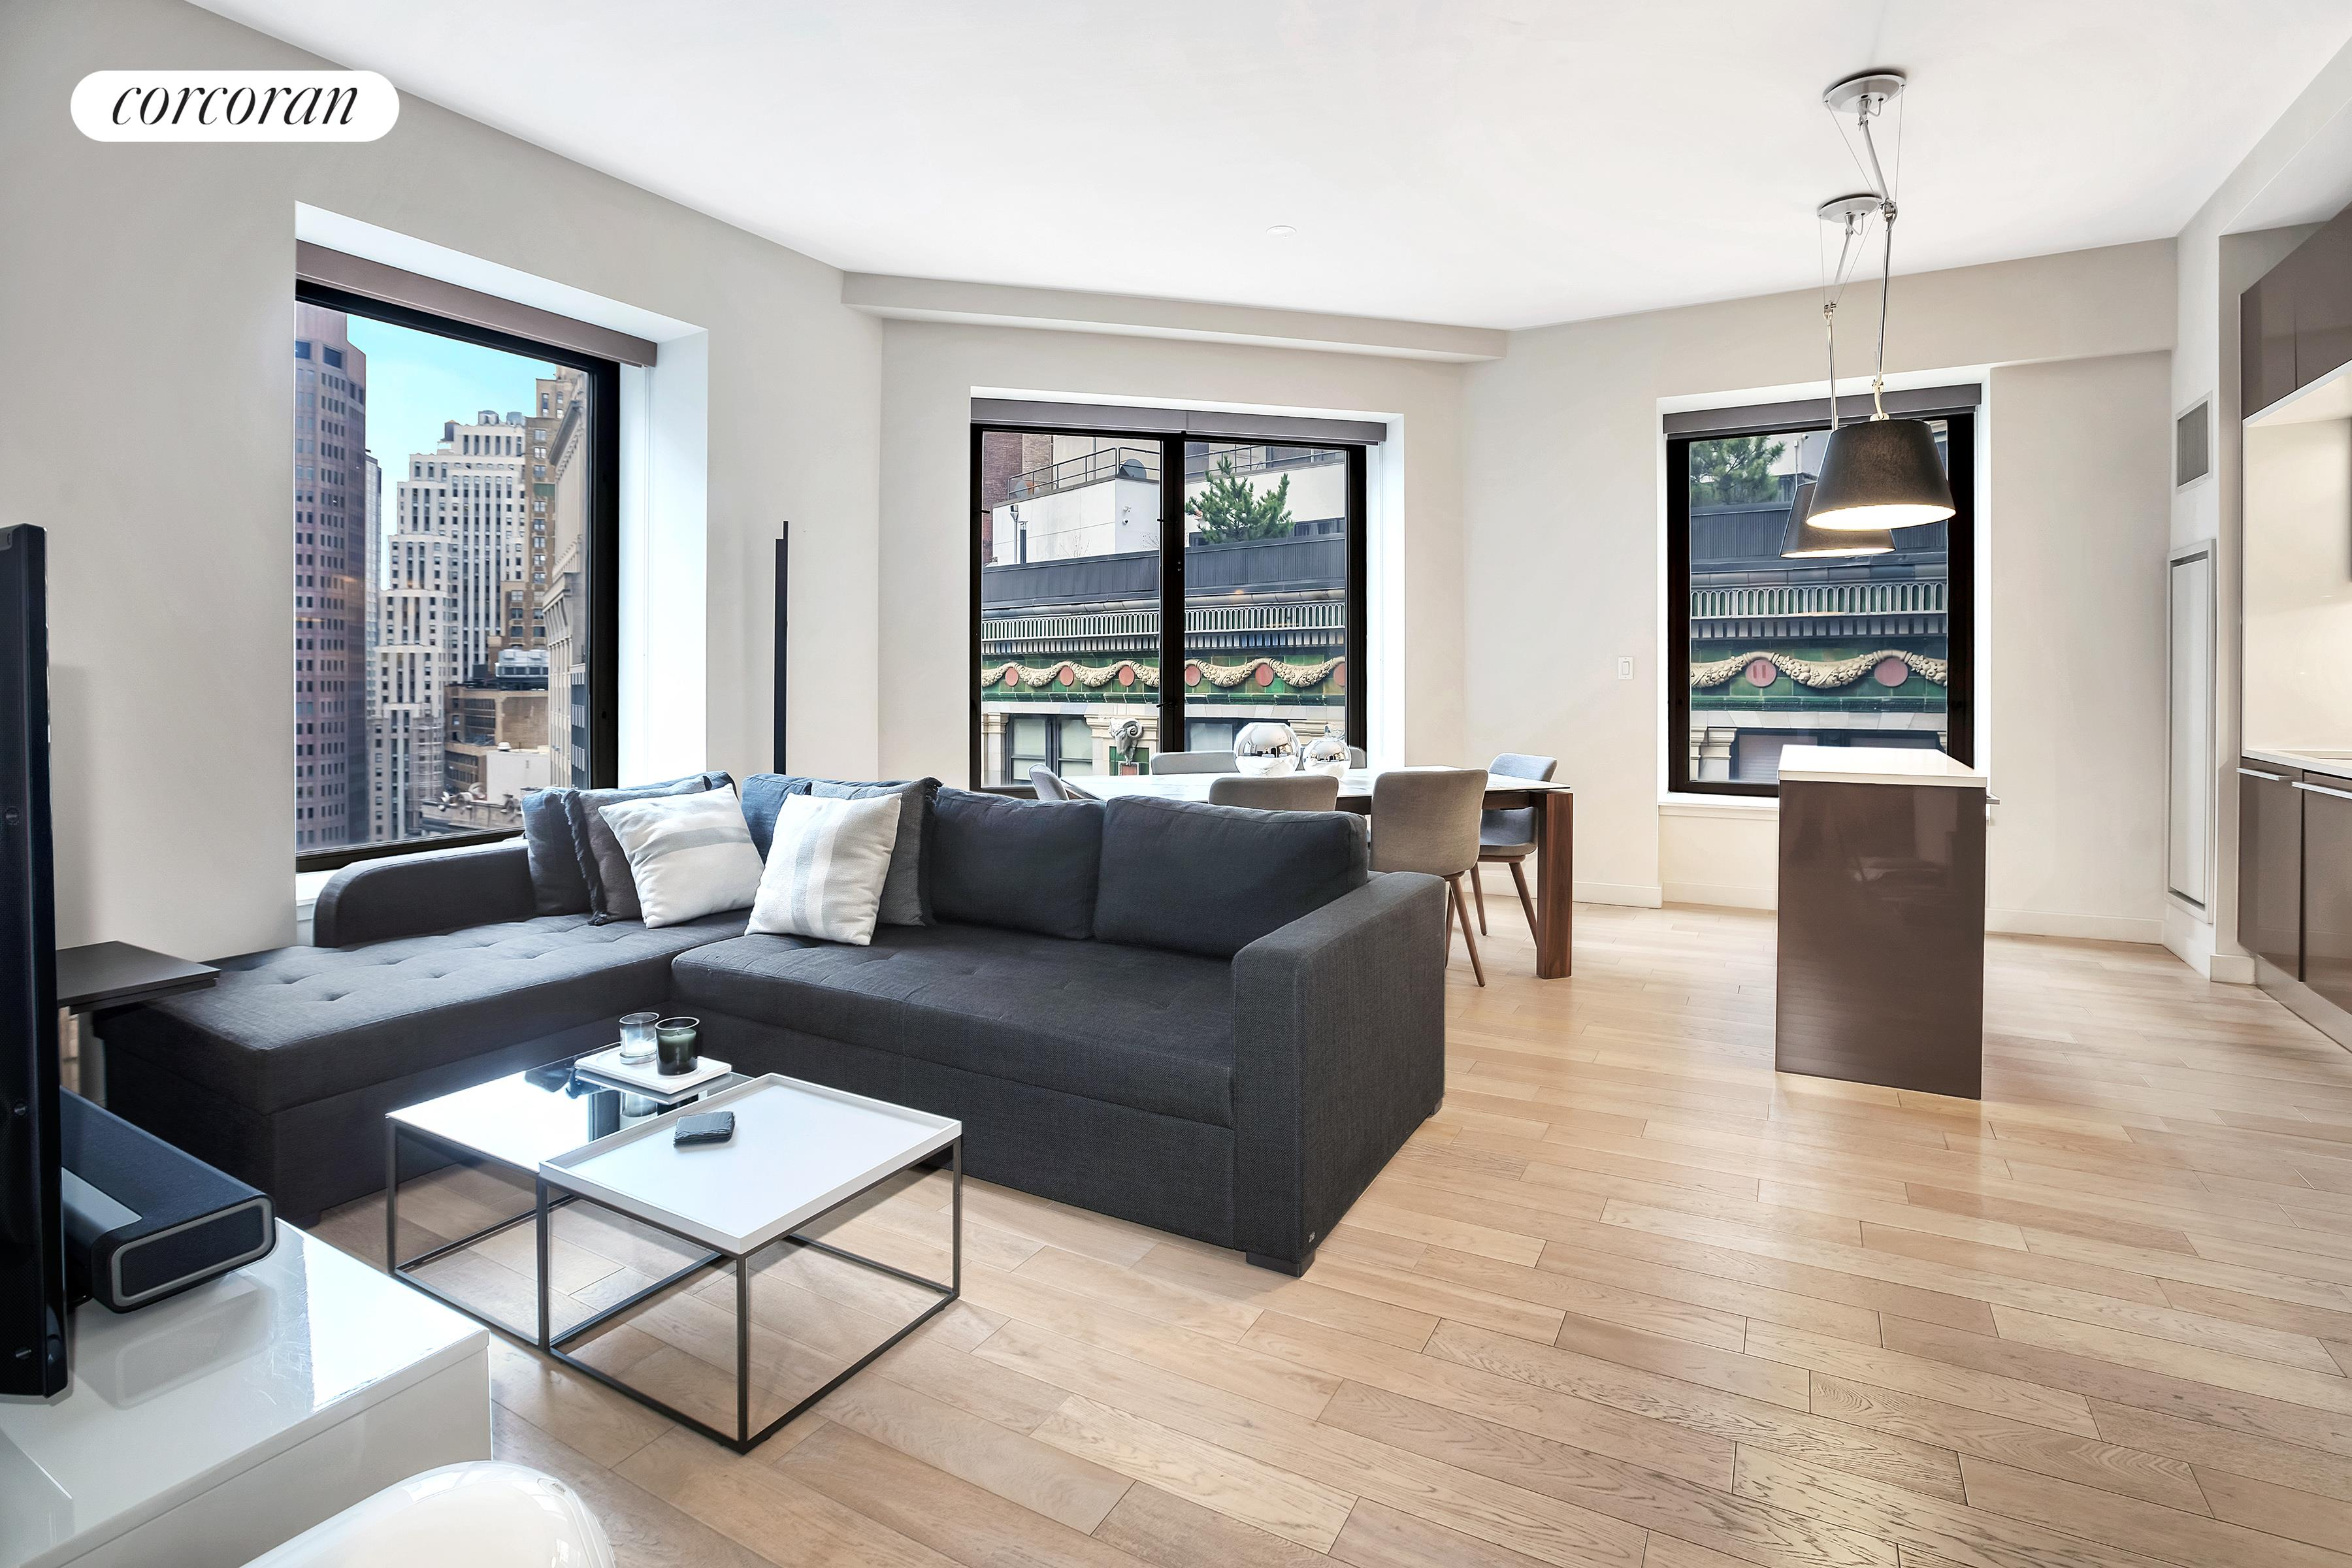 "Welcome home to this sprawling 1,367 SF corner, 2 Bedroom + Home Office, 2.5 Bathroom apartment featuring oversized windows with southwest exposures, offering exceptional natural light and showcasing breathtaking views of the East River, Brooklyn skyline and Lower Manhattan.This highly coveted, F-line offers a generously proportioned, layout featuring a 21ft by 21ft living and dining room, lofty 10 foot ceilings and wide-planked cerused oak flooring throughout. This Rockwell designed residence features an open BOFFI chef's kitchen with a center island, Caesarstone Countertops, lacquer kitchen cabinetry and to top-of-the-line appliances including Subzero refrigerator, Bosch oven and range, Miele dishwasher and Sharp microwave. Additional features include an individual heat pump HVAC system with Nest Thermostat, in-home Bosch washer/dryer, designer light fixtures and custom roller shades and blinds  throughout.Enjoy East River & Hudson River views from the oversized master suite which features two closets and a crisply-lit 5-piece en suite bathroom clad in custom wood cabinetry and Botticino Semi Classico Marble Floors. The second bedroom features spectacular views and a generous walk-in closet. The bonus home office can be customized to meet your ""work from home needs"" or could be utilized for extra closet and storage space.The building features just over 30,000 SF of amenities including; access to all Andaz services, a residents lounge with billiards and private screening room, a state-of-the-art fitness center with yoga & ballet studio, and a rooftop terrace spanning the entirety of the building with bar, lounge and indoor/outdoor fireplace. With easy access to nearly every subway line and the newly constructed Fulton Center, to major food markets and restaurants like Eataly, Nobu, El Vez, Blue Smoke, North End Grill, and many more, there's something for everyone. Enjoy shopping at Brookfield Place buzzing with prominent brands such as Le District, Saks Fifth Avenue, Hermes, and Burberry. There's also the South Street Seaport a short distance away with its many shops and eateries situated on the East River with stunning views of Brooklyn and Manhattan's historic bridges."